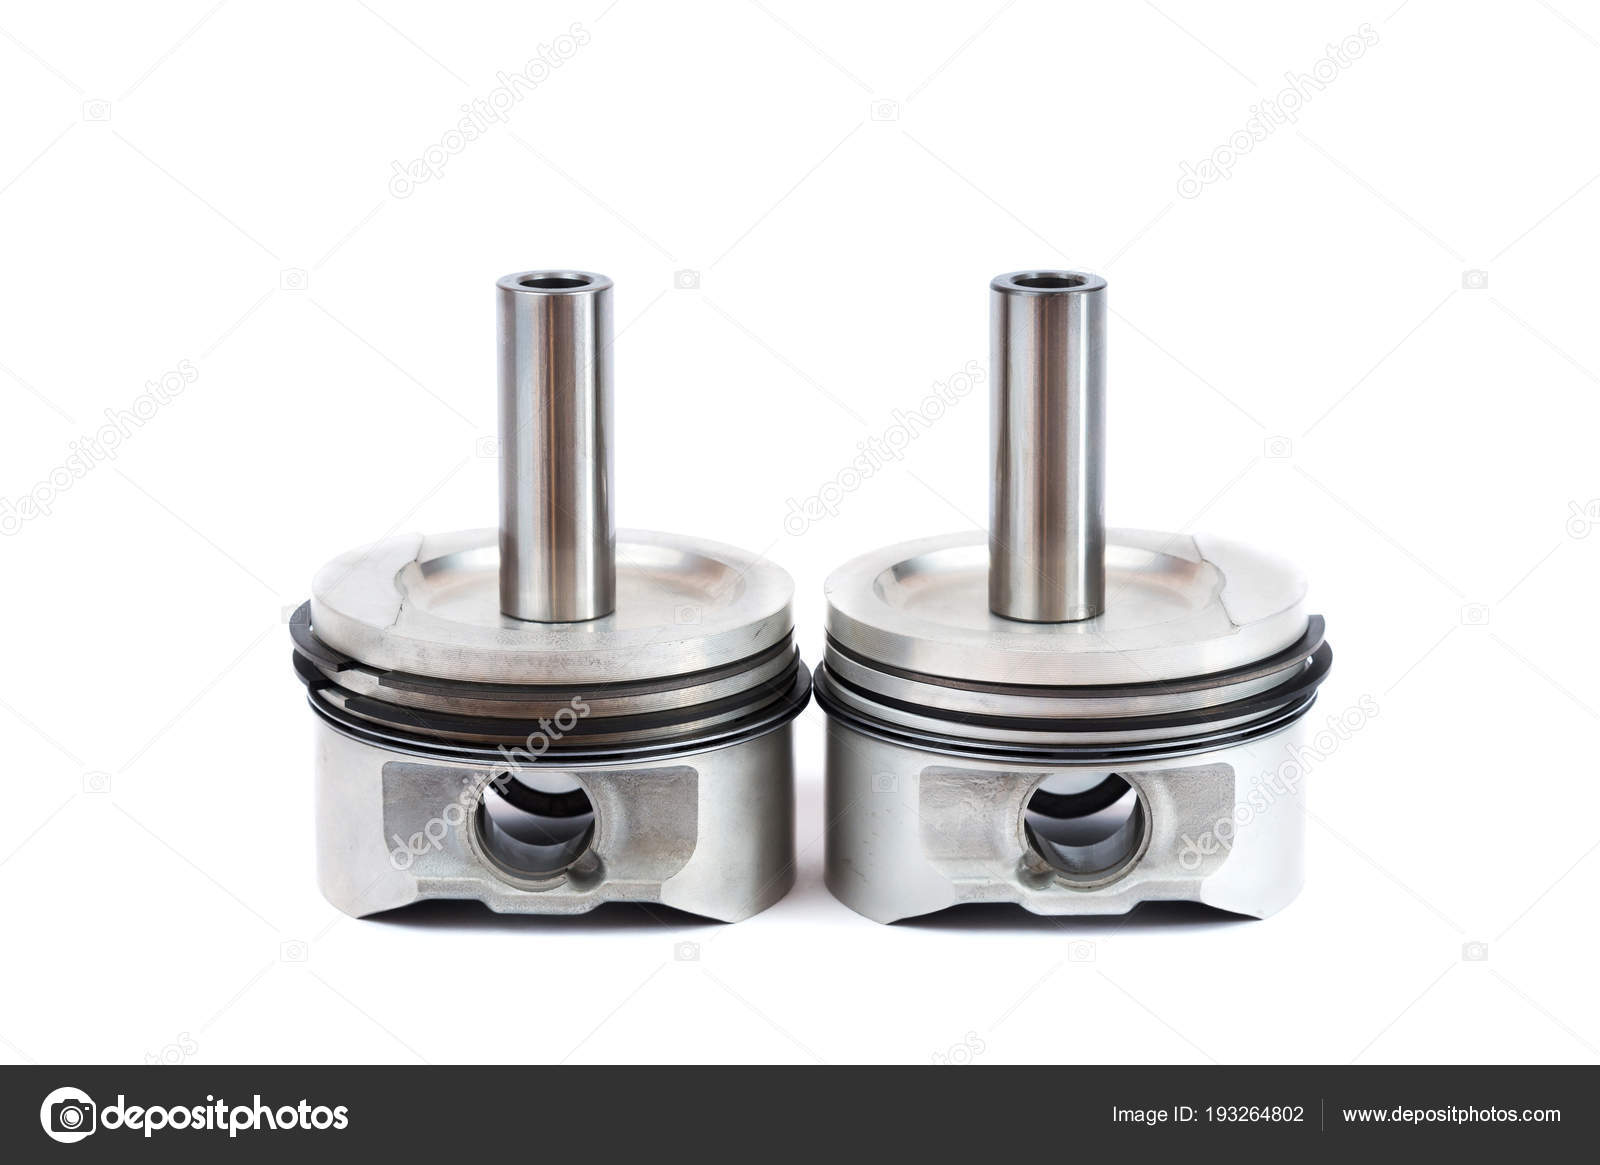 Close-up of spare parts two new pistons with connecting rods